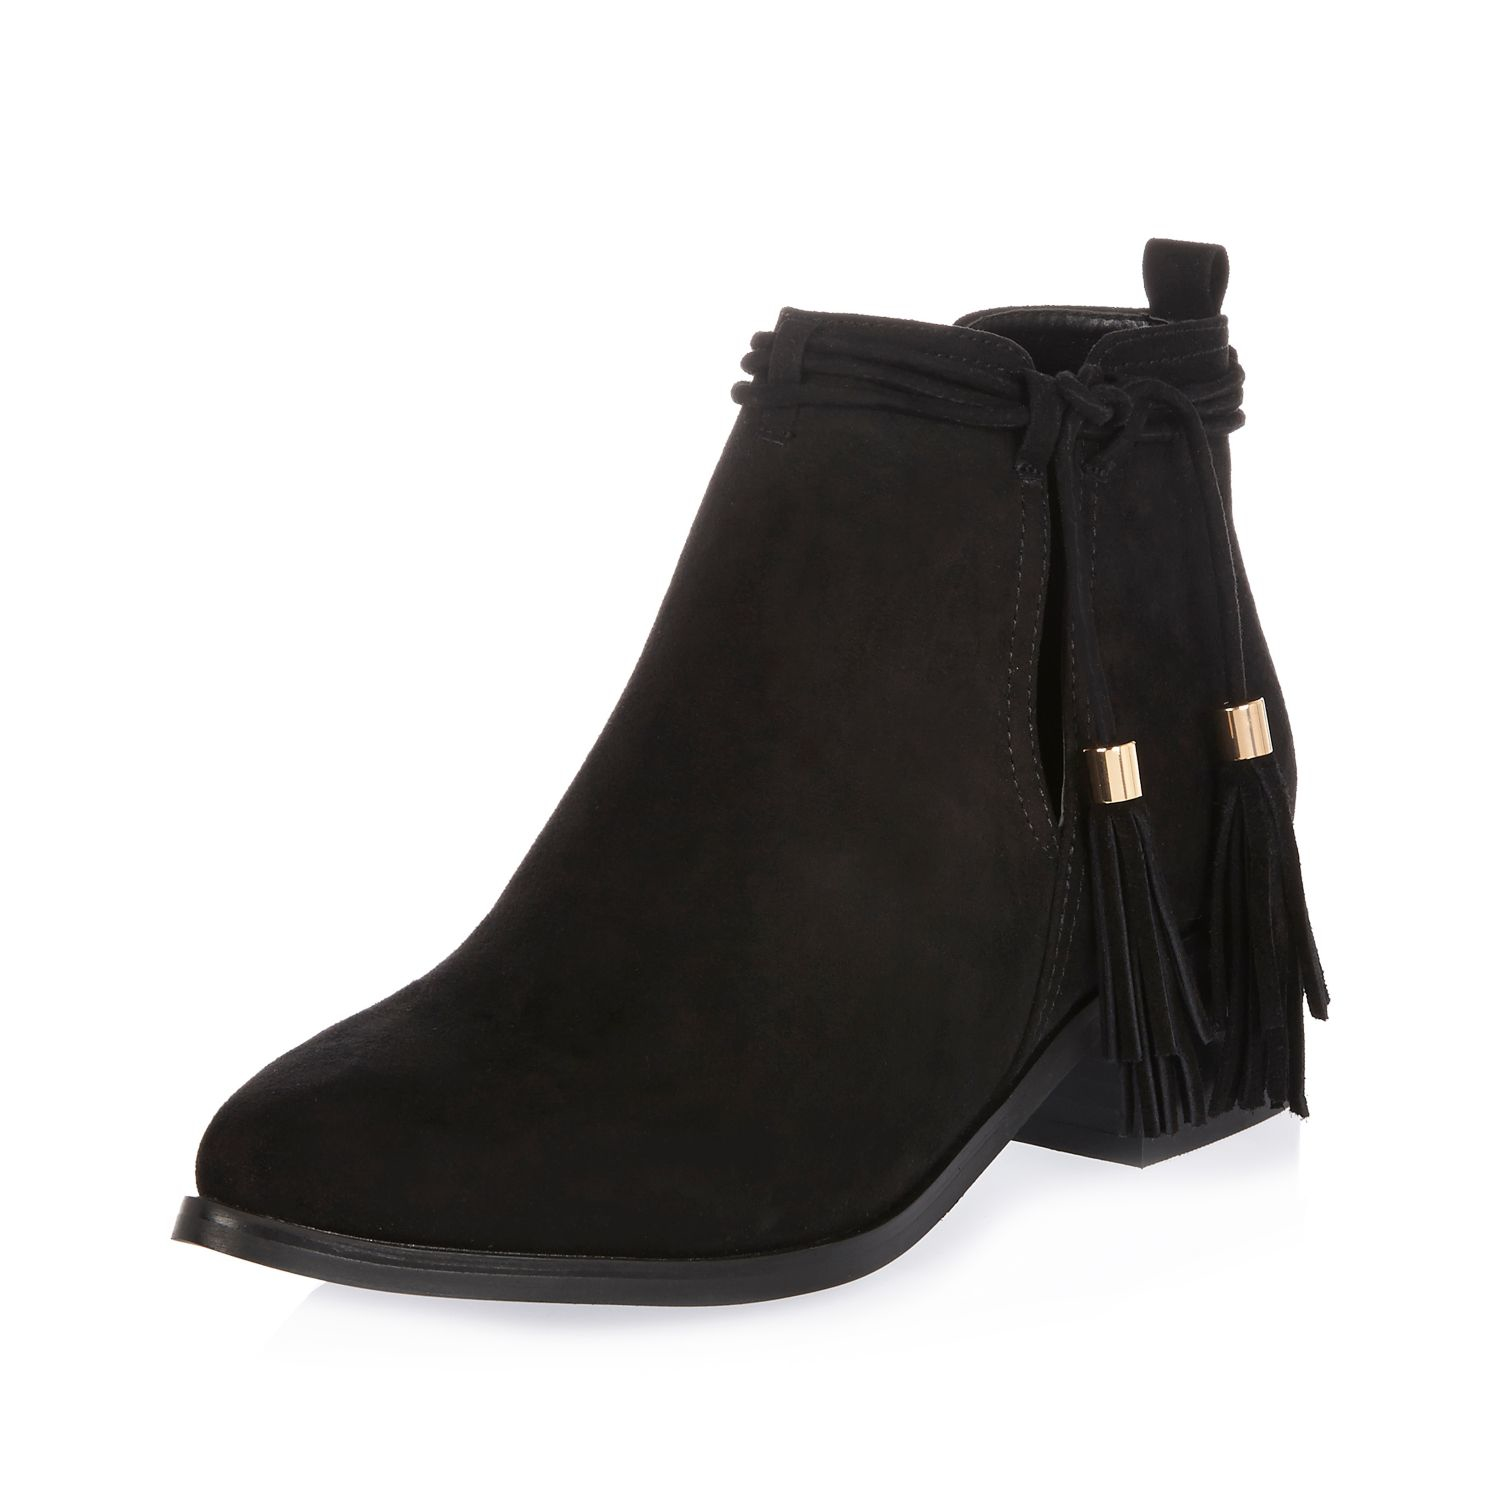 River island Black Tassel Cut-out Ankle Boots in Black | Lyst